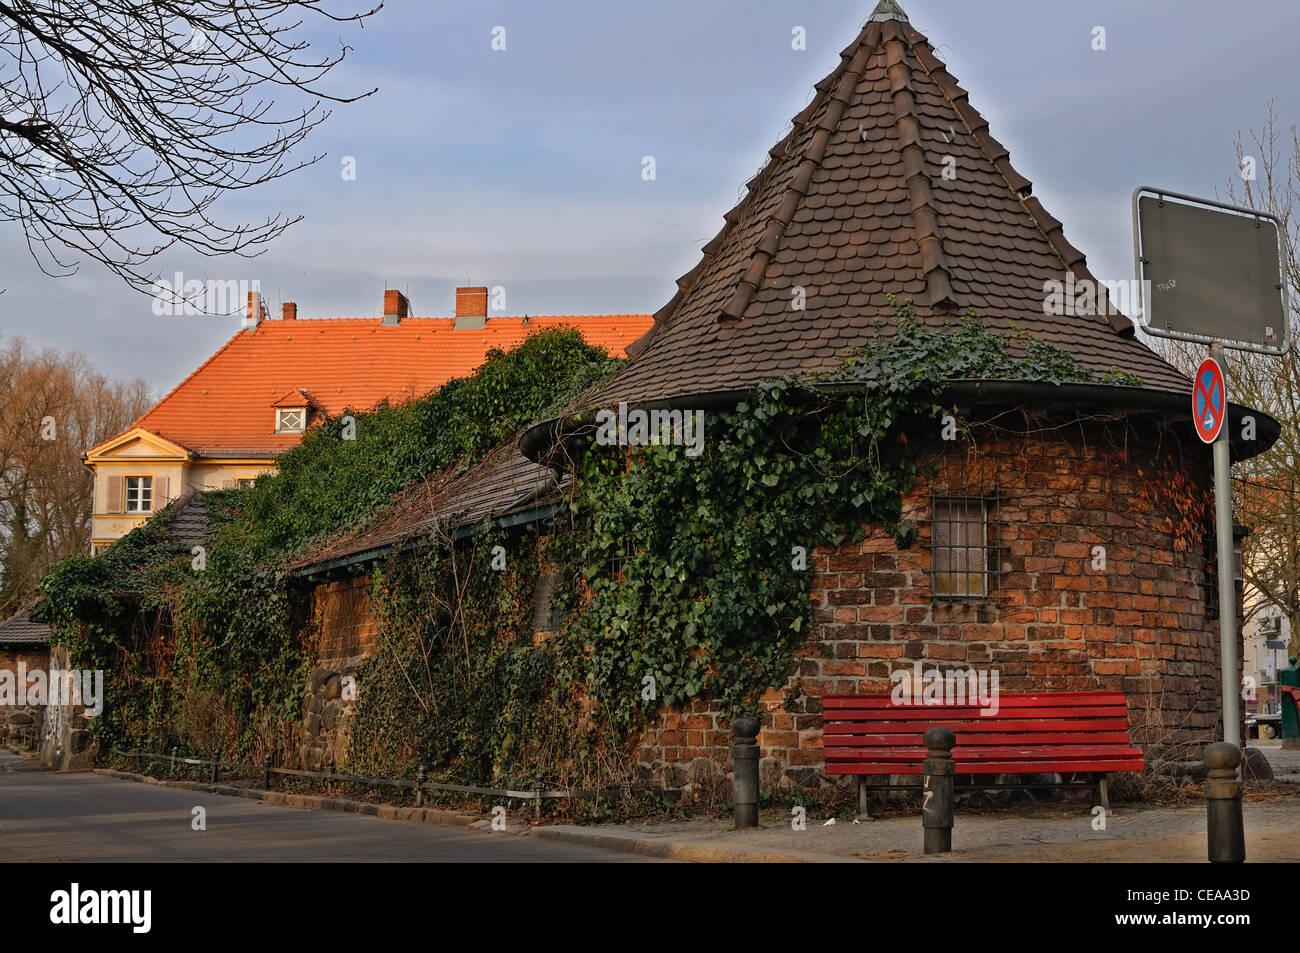 berlin altes haus mit efeu in berlin bezirk spandau stockfoto bild 43253377 alamy. Black Bedroom Furniture Sets. Home Design Ideas